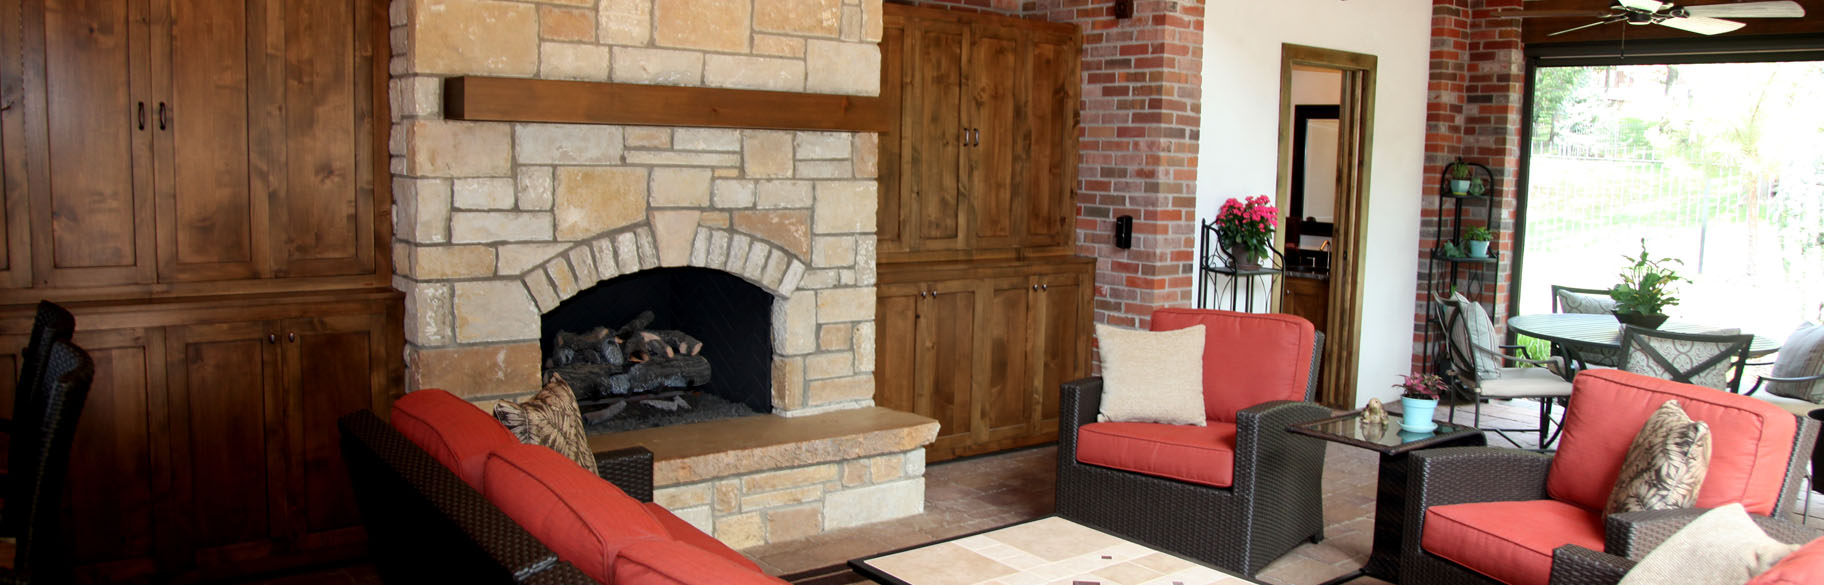 fireplaces u0026 pits outdoor fireplaces outdoor fire pits